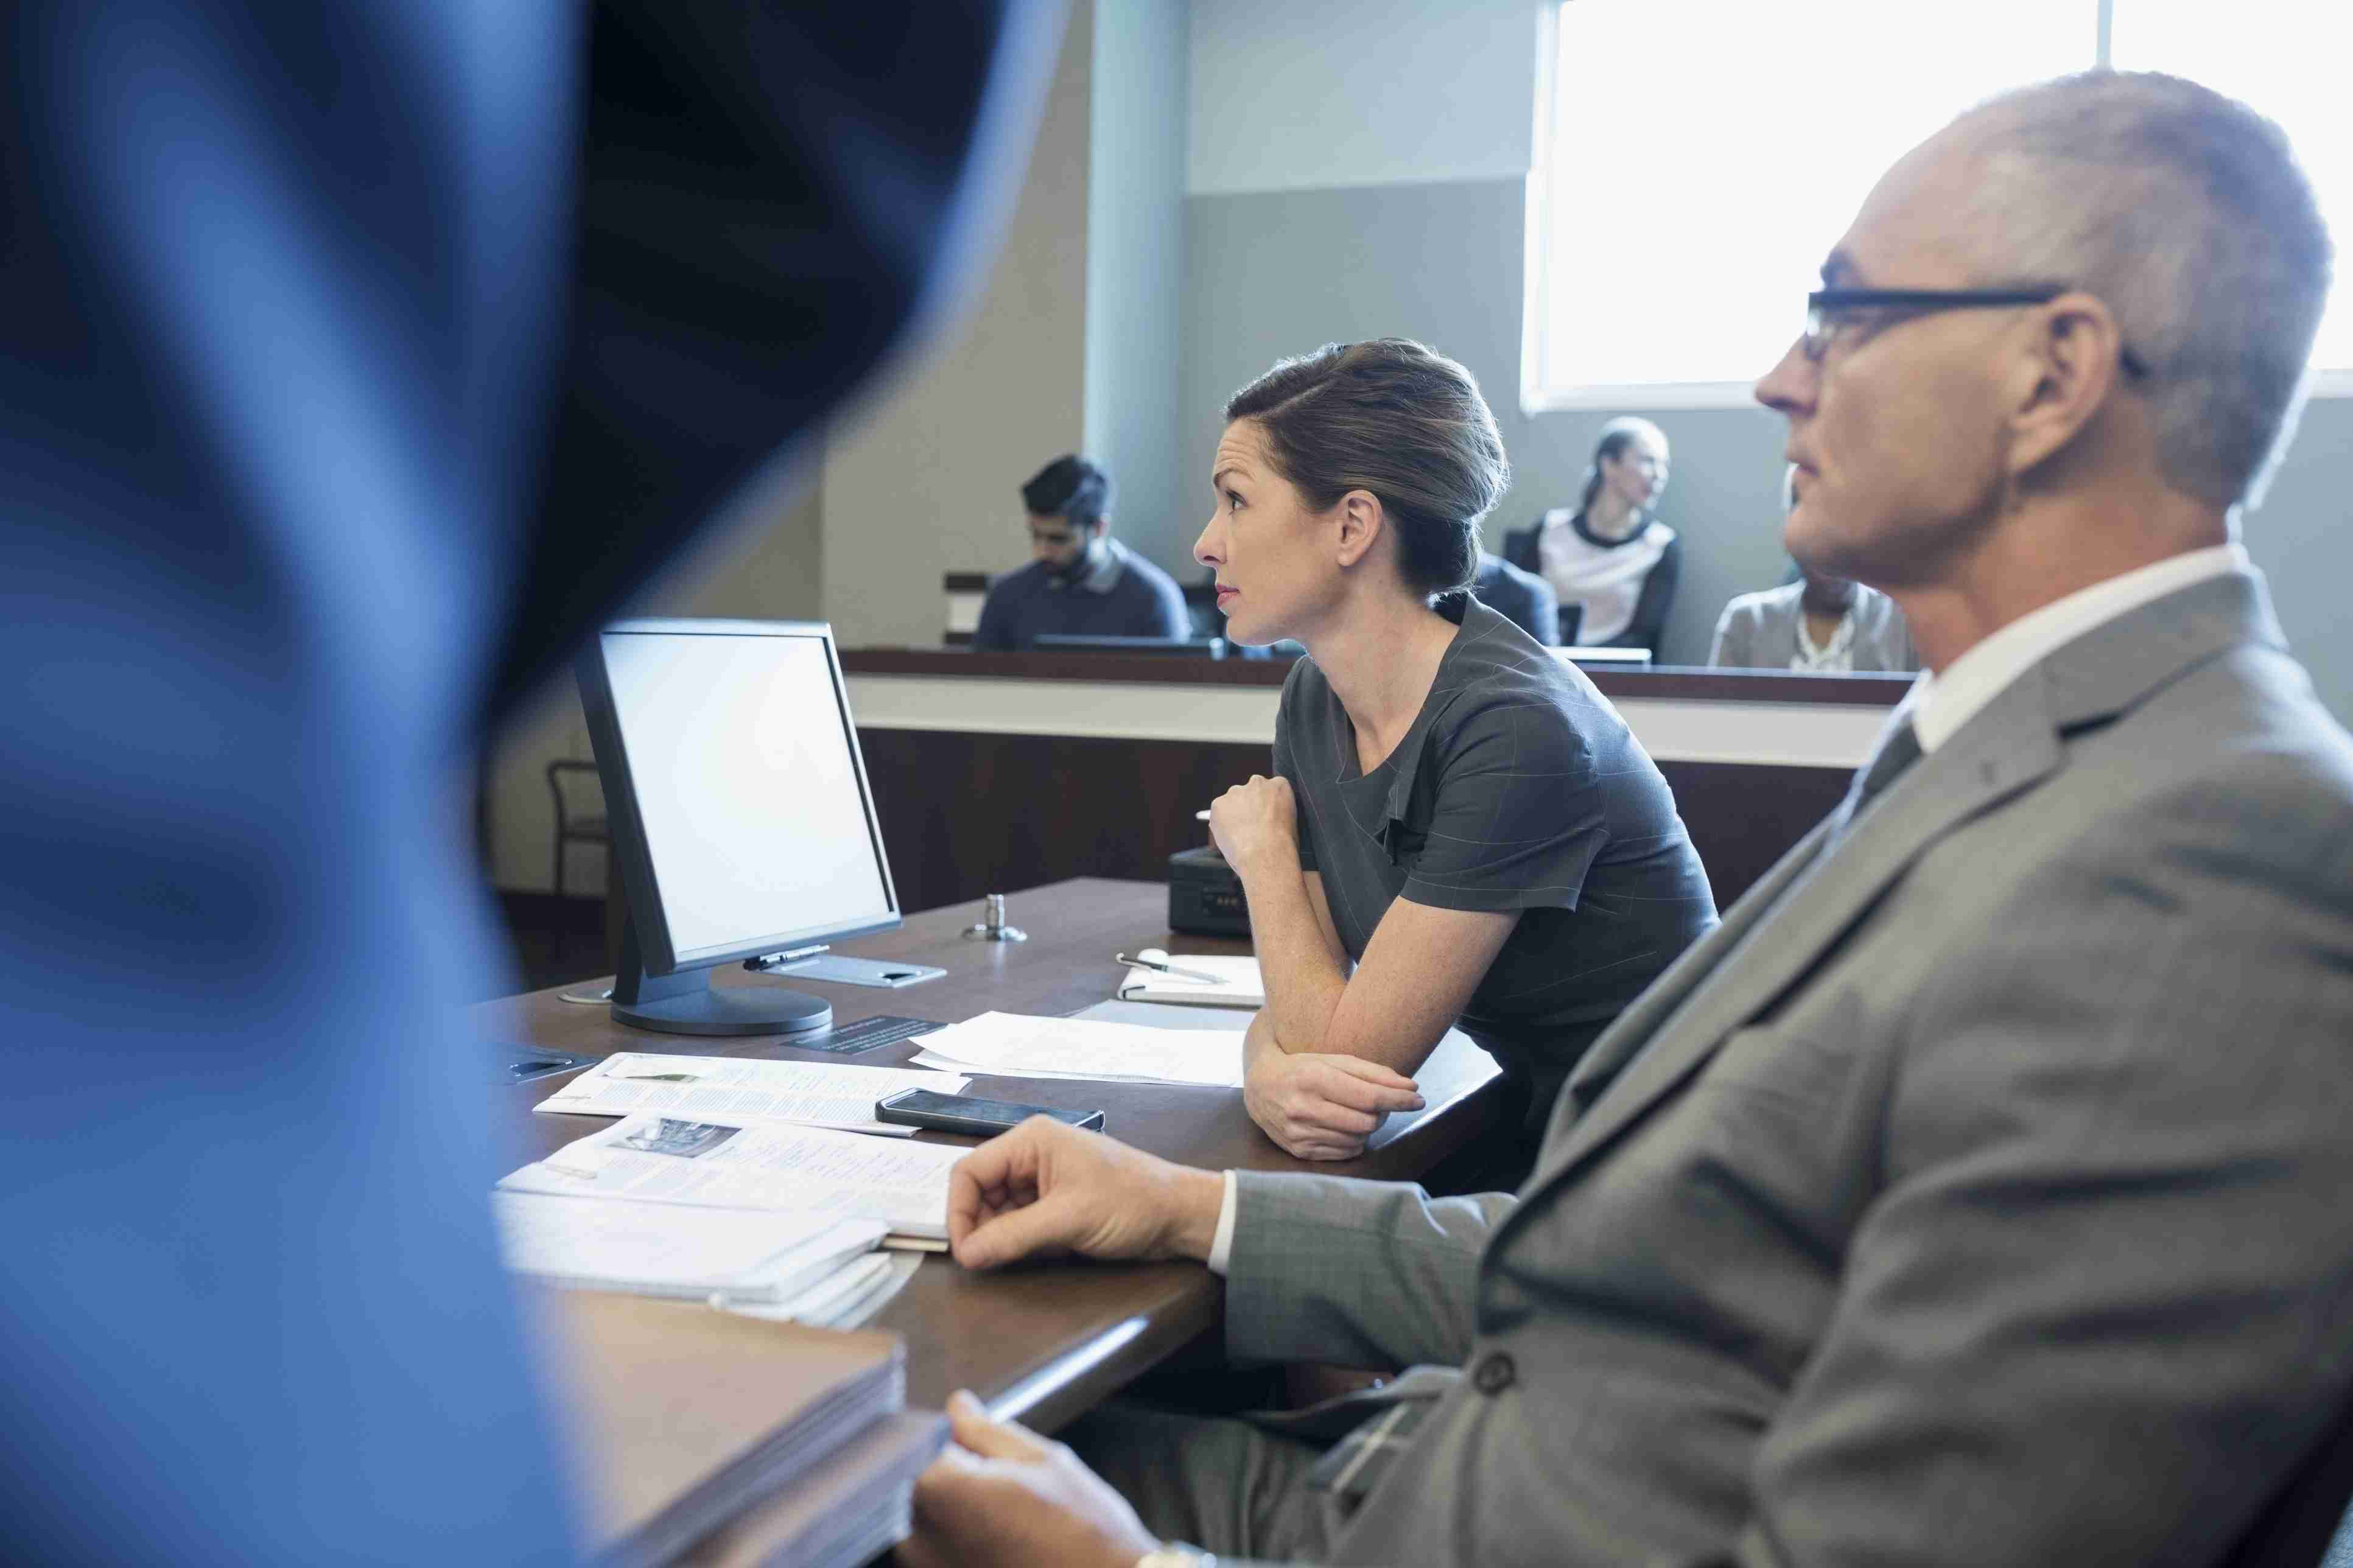 Attentive attorneys listening at table in legal trial courtroom